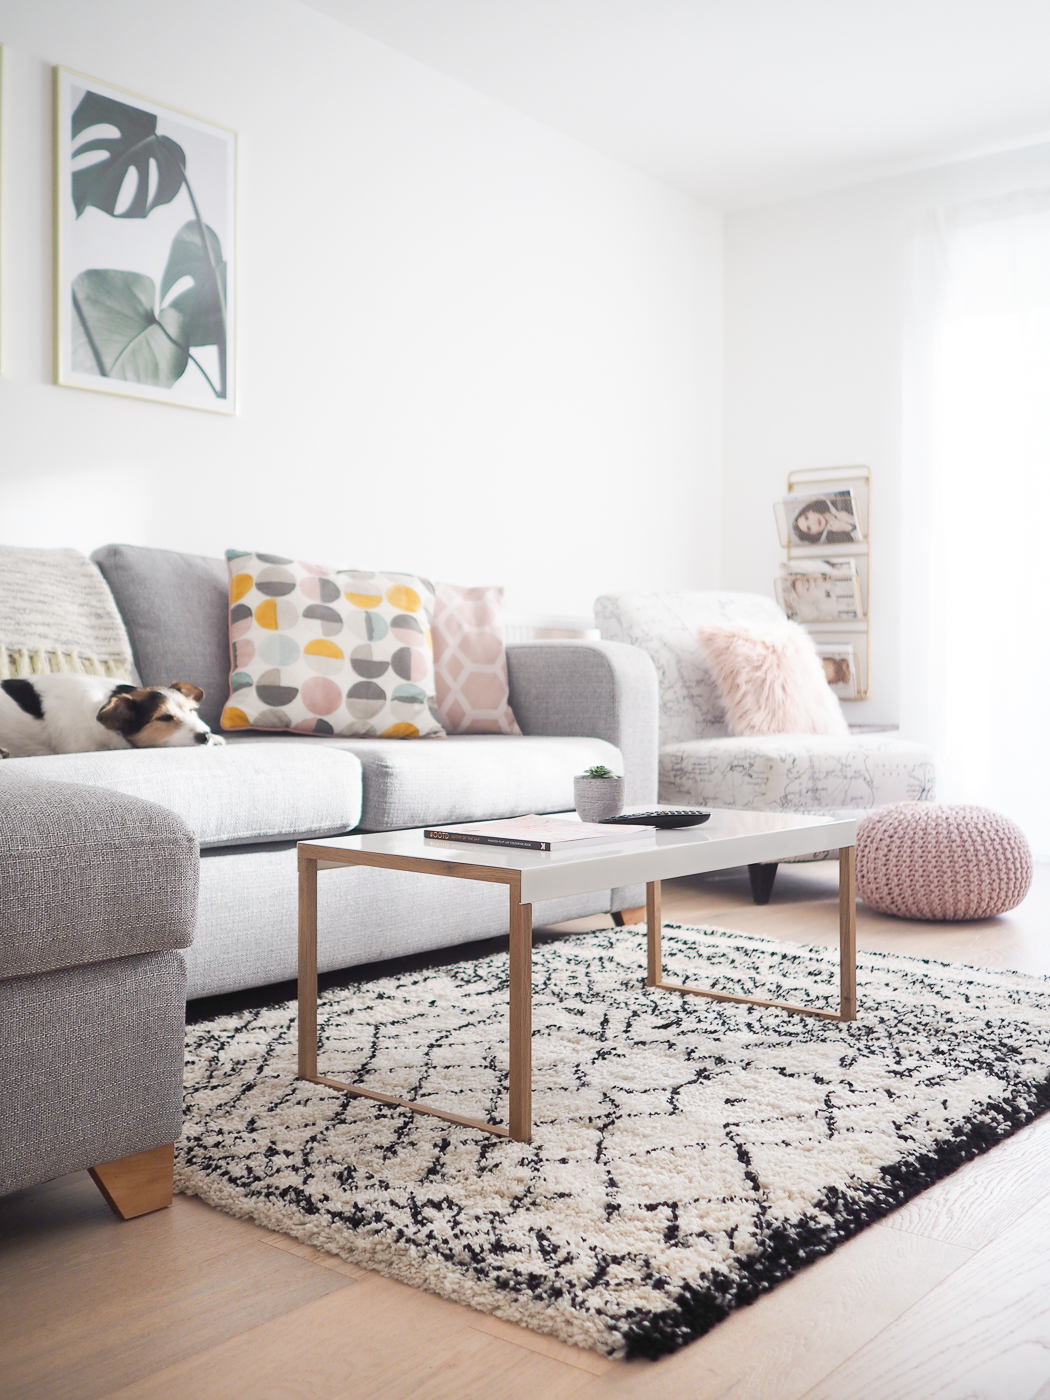 Living Room Tour | Pink, Grey & Gold decor - Bang on Style